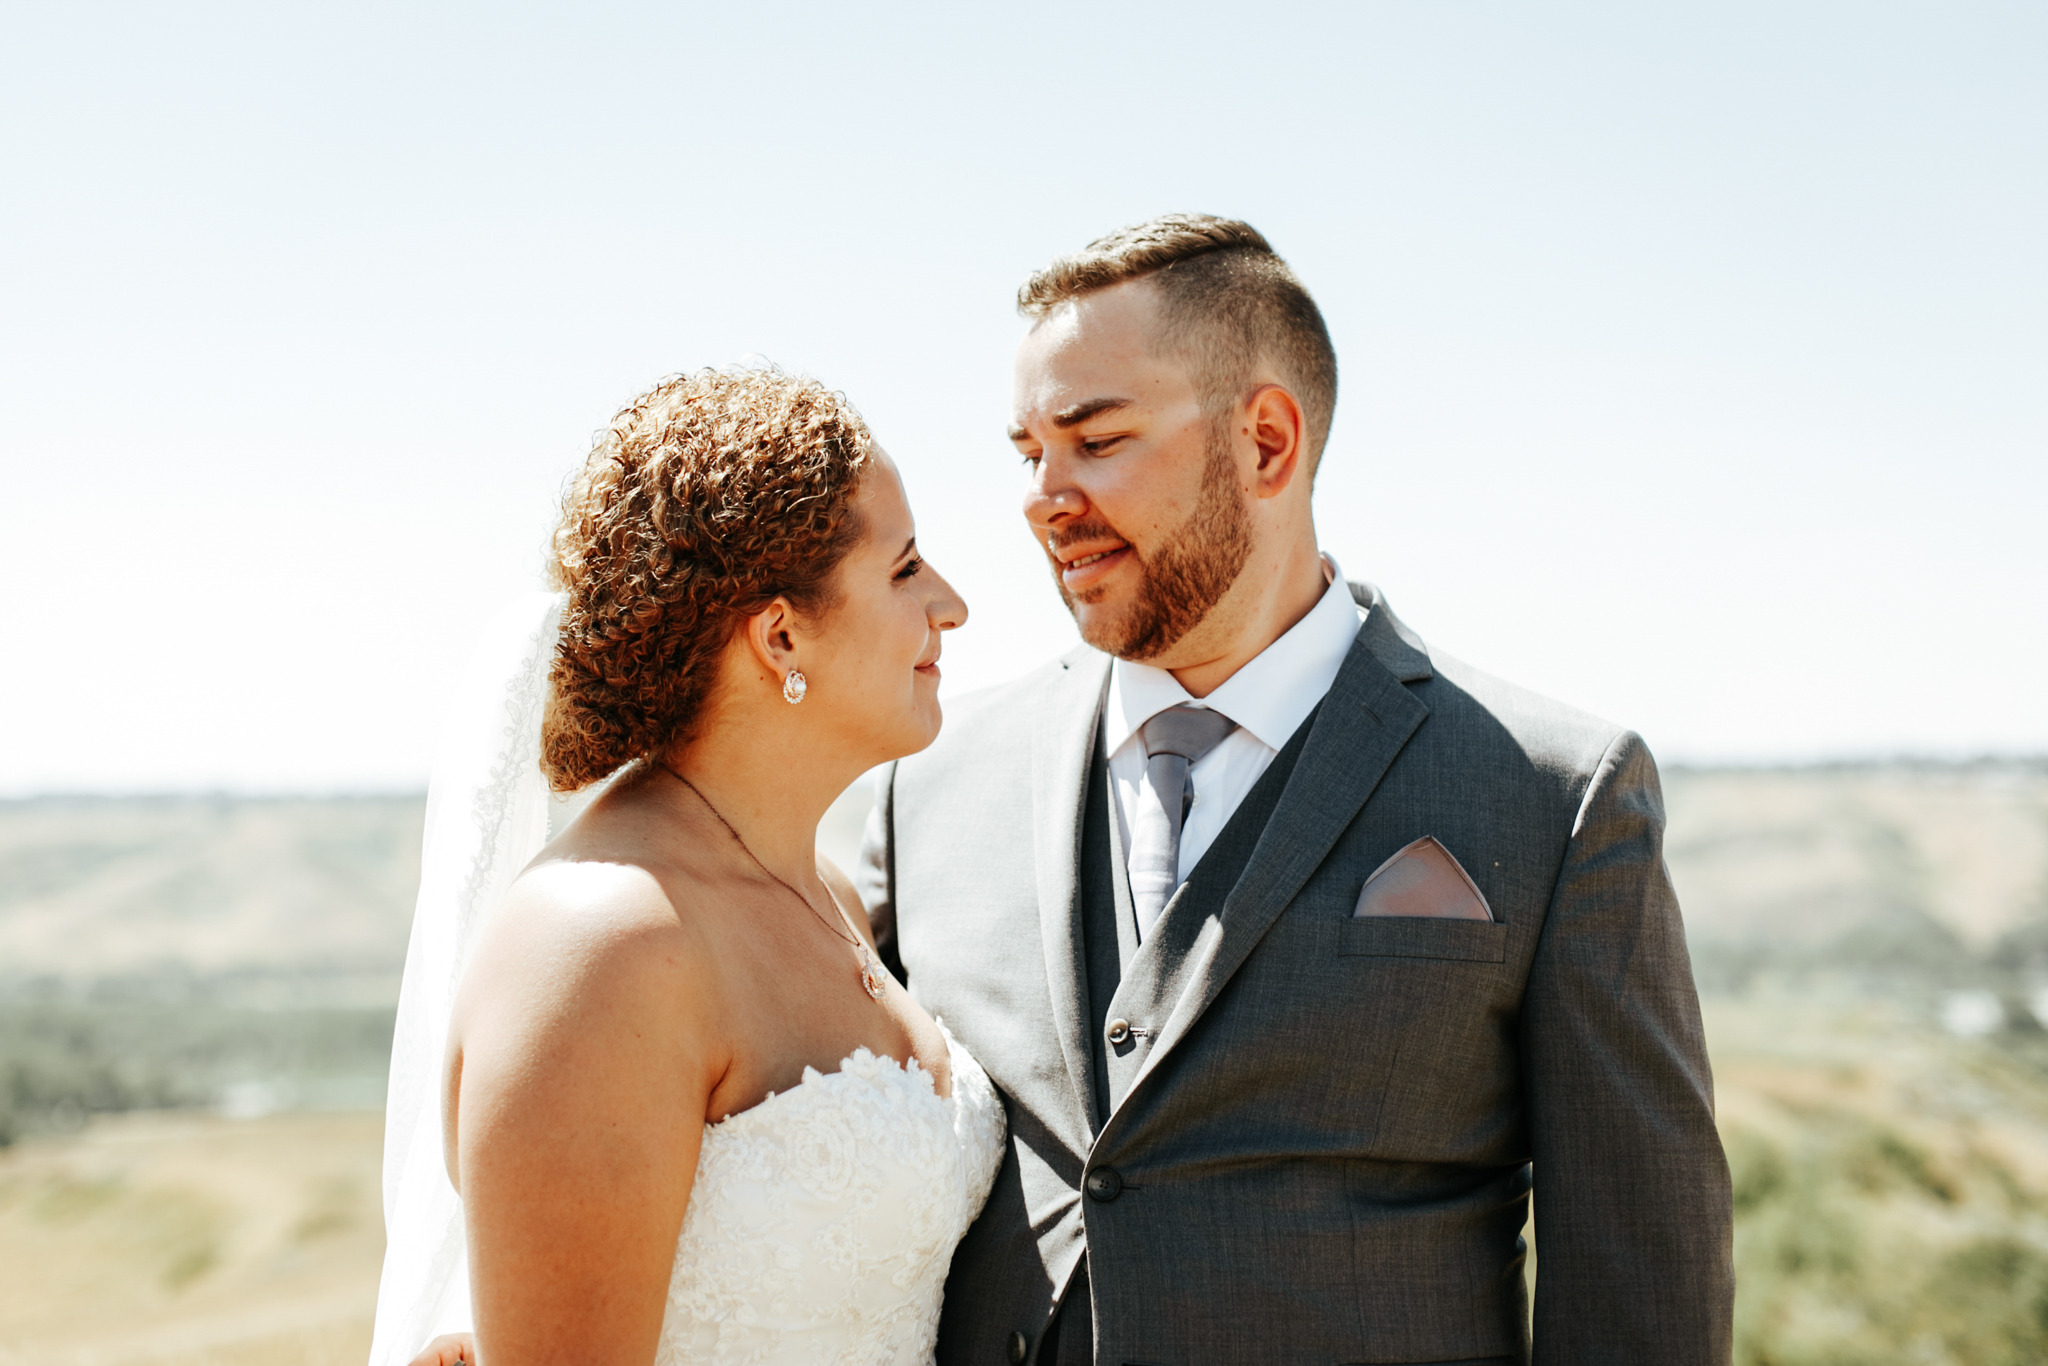 lethbridge-wedding-photographer-love-and-be-loved-photography-trent-danielle-galt-reception-picture-image-photo-97.jpg